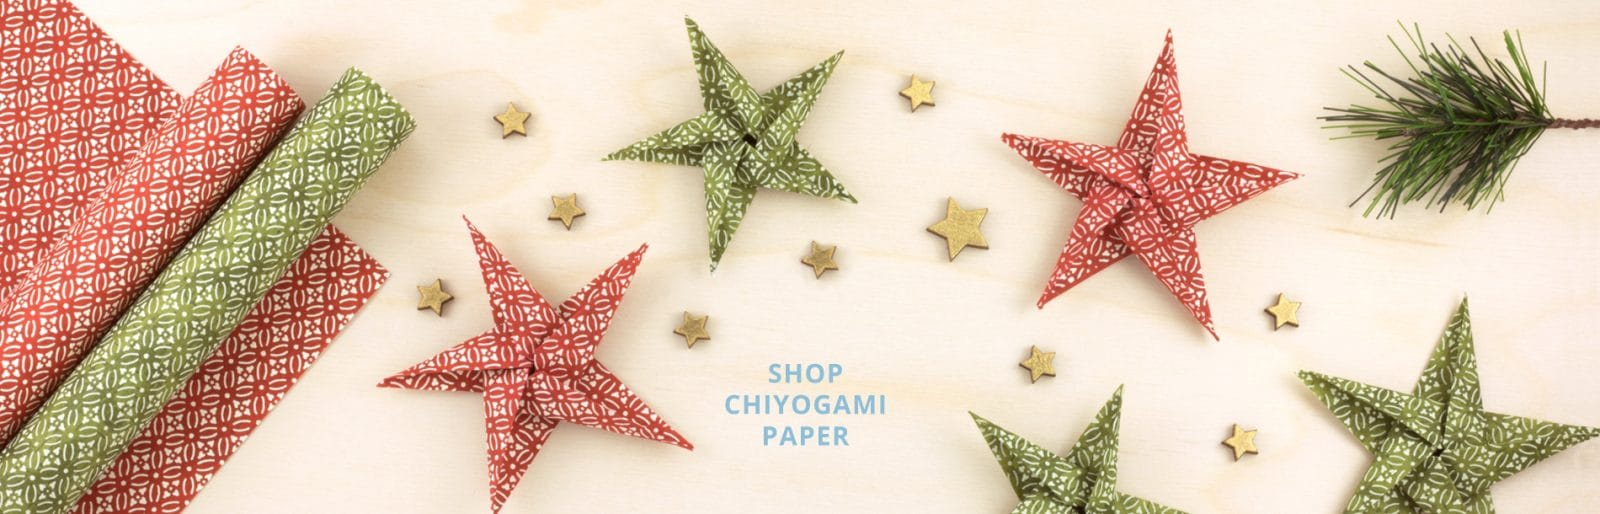 Chiyogami Paper with Origami Stars Christmas